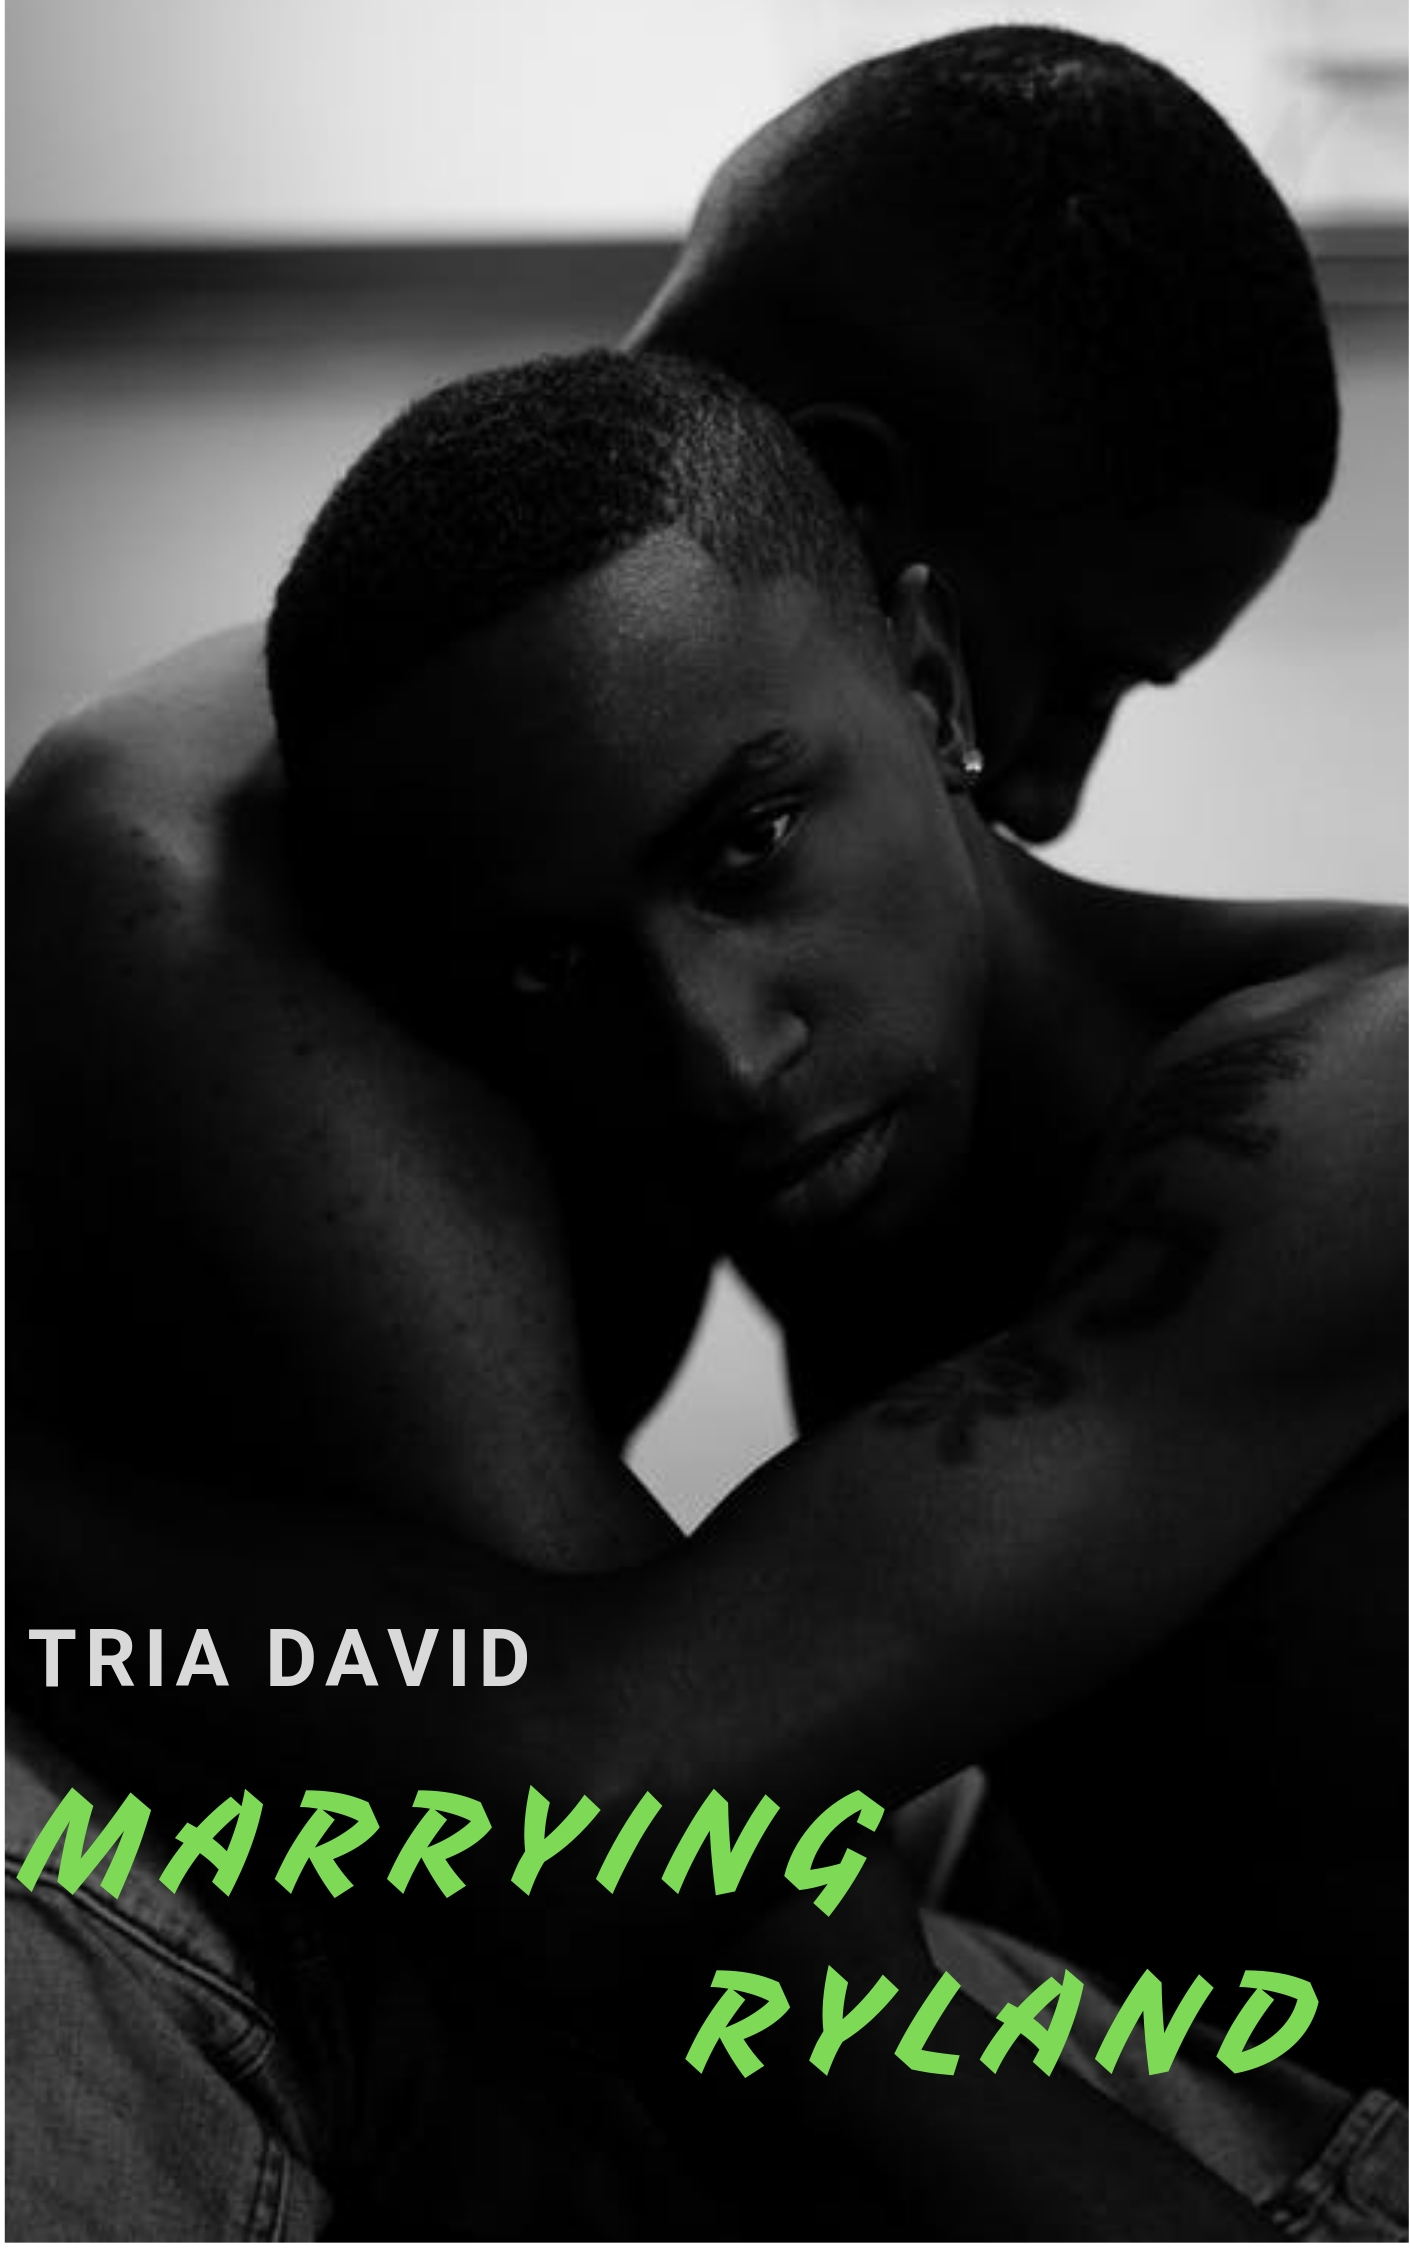 Marrying Ryland, an Ebook by Tria David